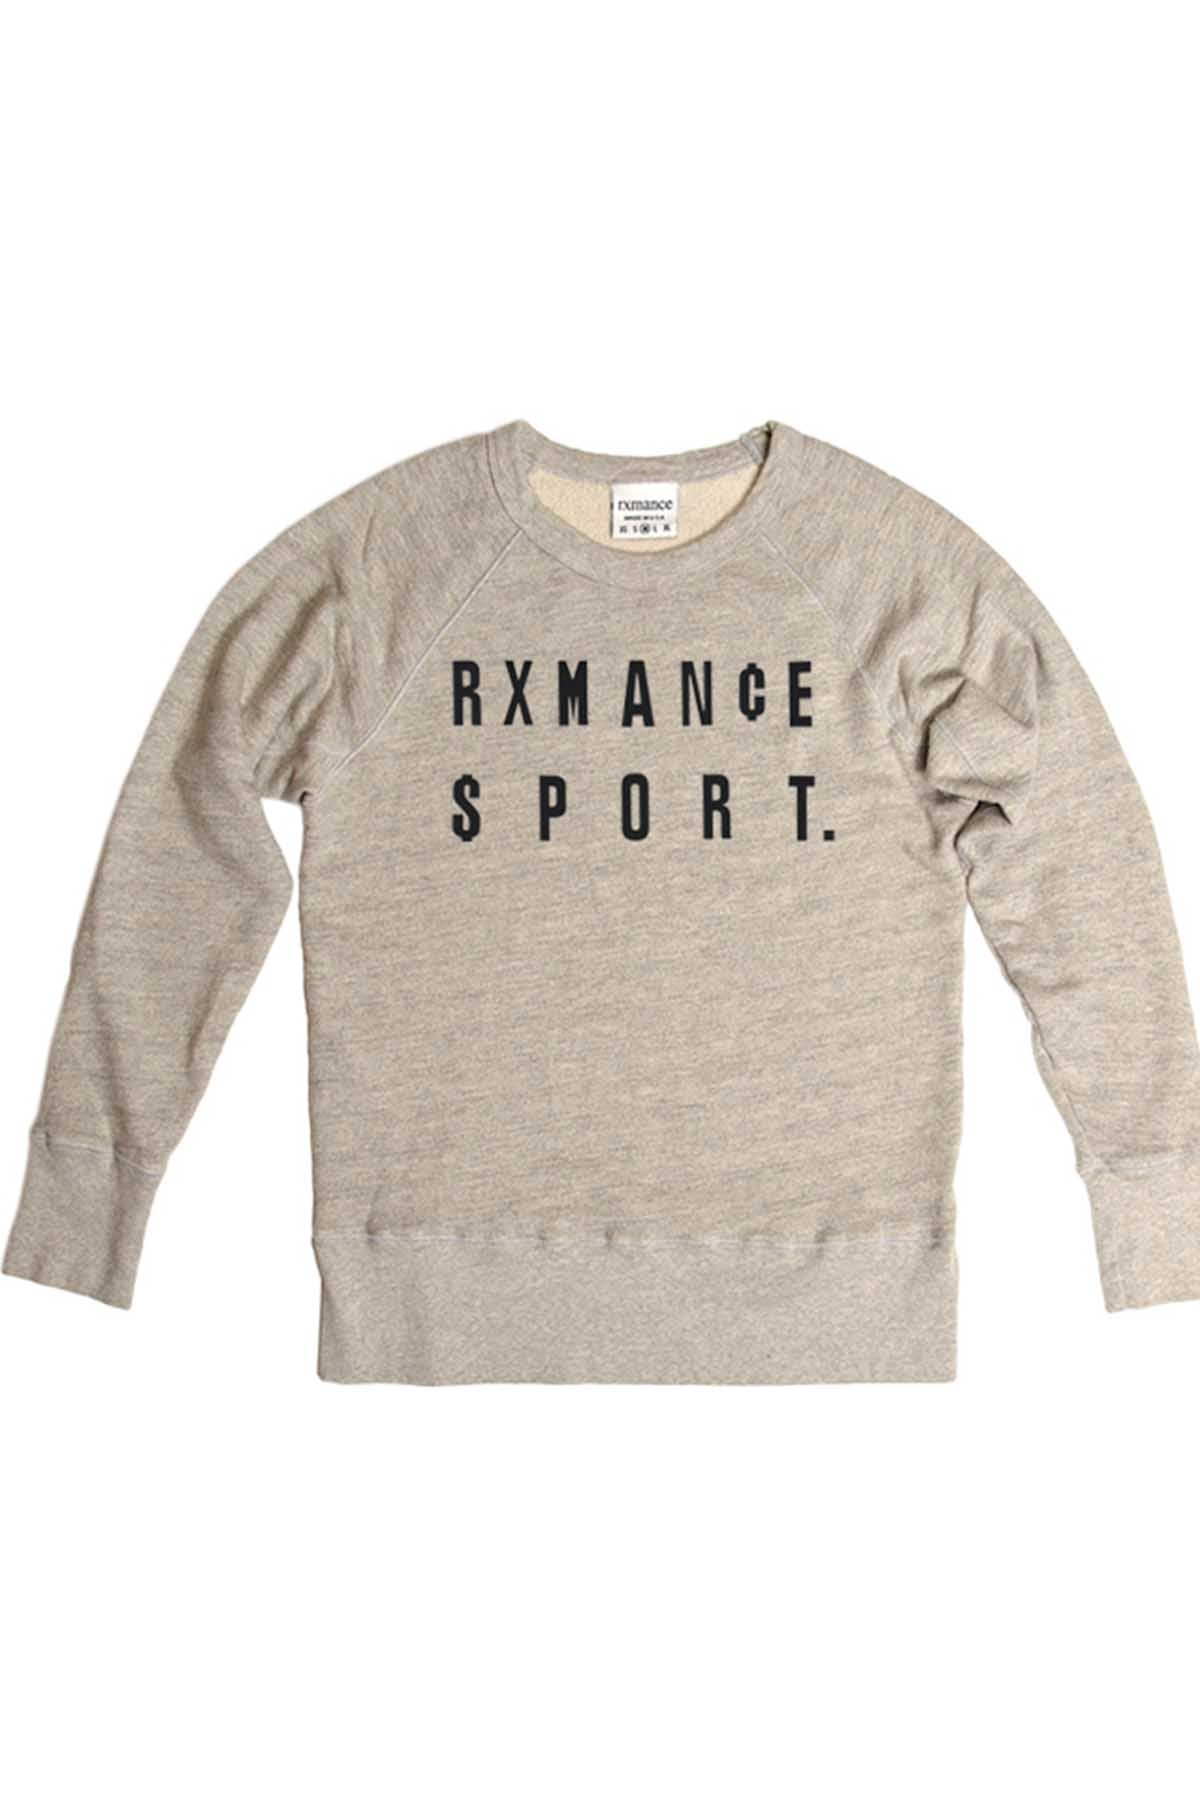 Rxmance Unisex Heather Grey 'Money' Sweatshirt